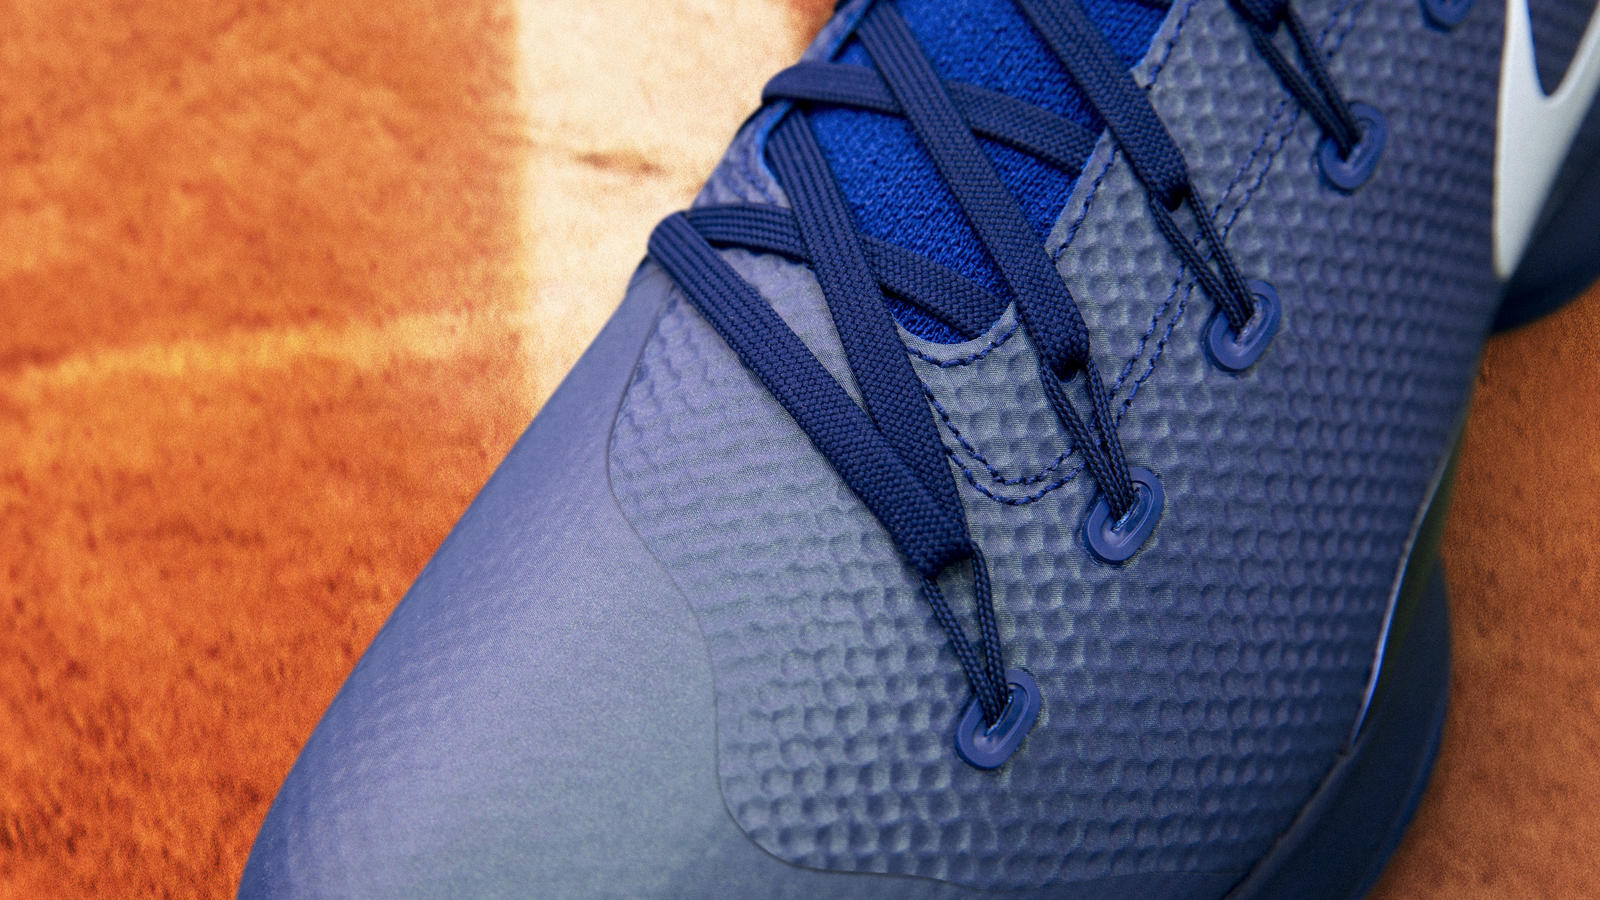 Nikecourt air zoom ultrafly clay 2 hd 1600